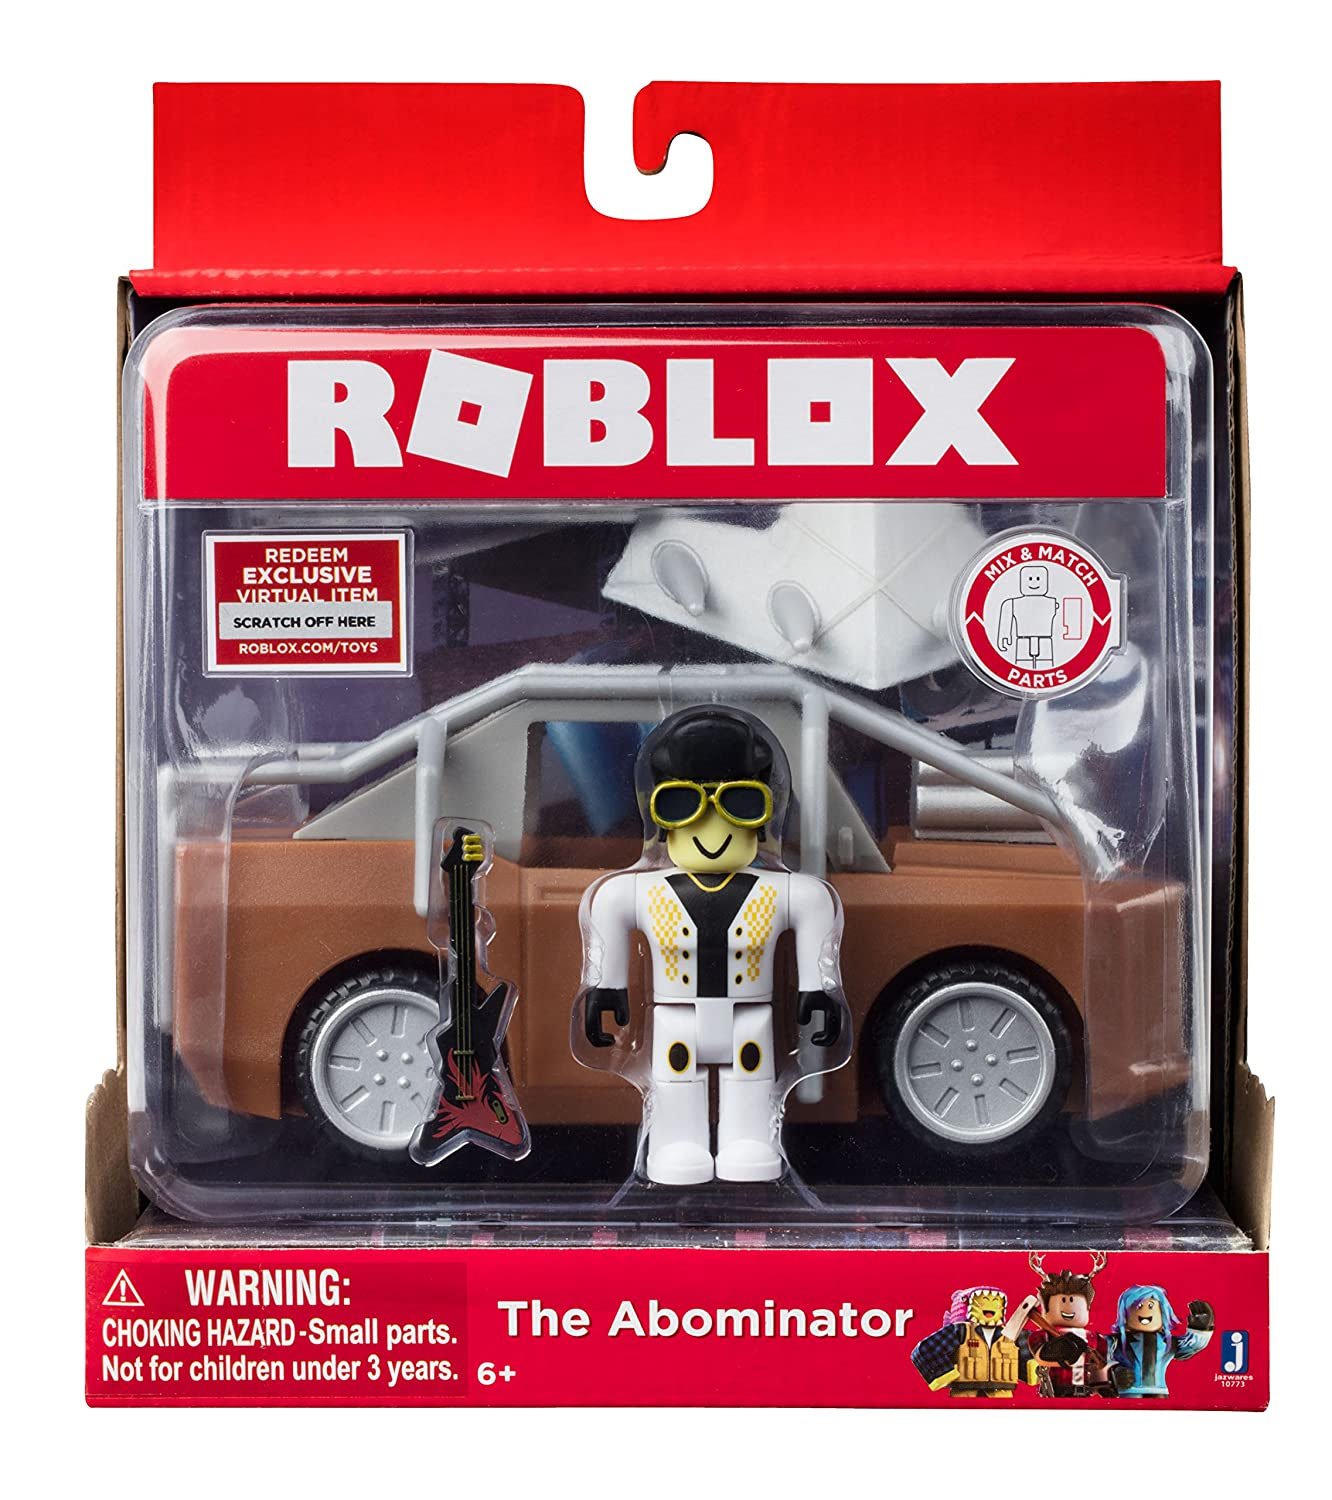 Rublix Toys Green Bay : Roblox the abominator figure with vehicle virtual item